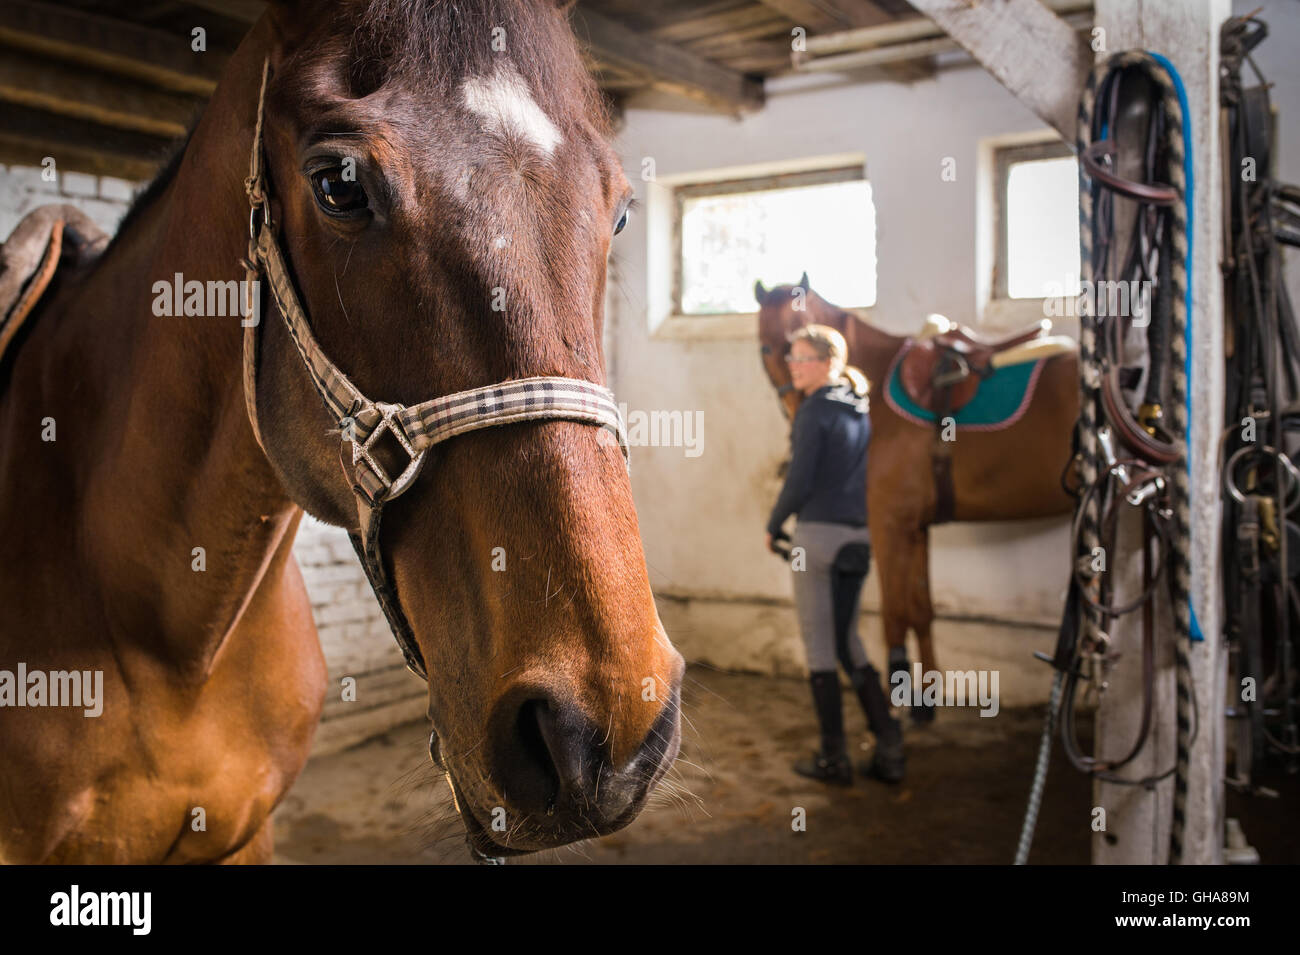 Close-up of  portrait horse in the stable - Stock Image